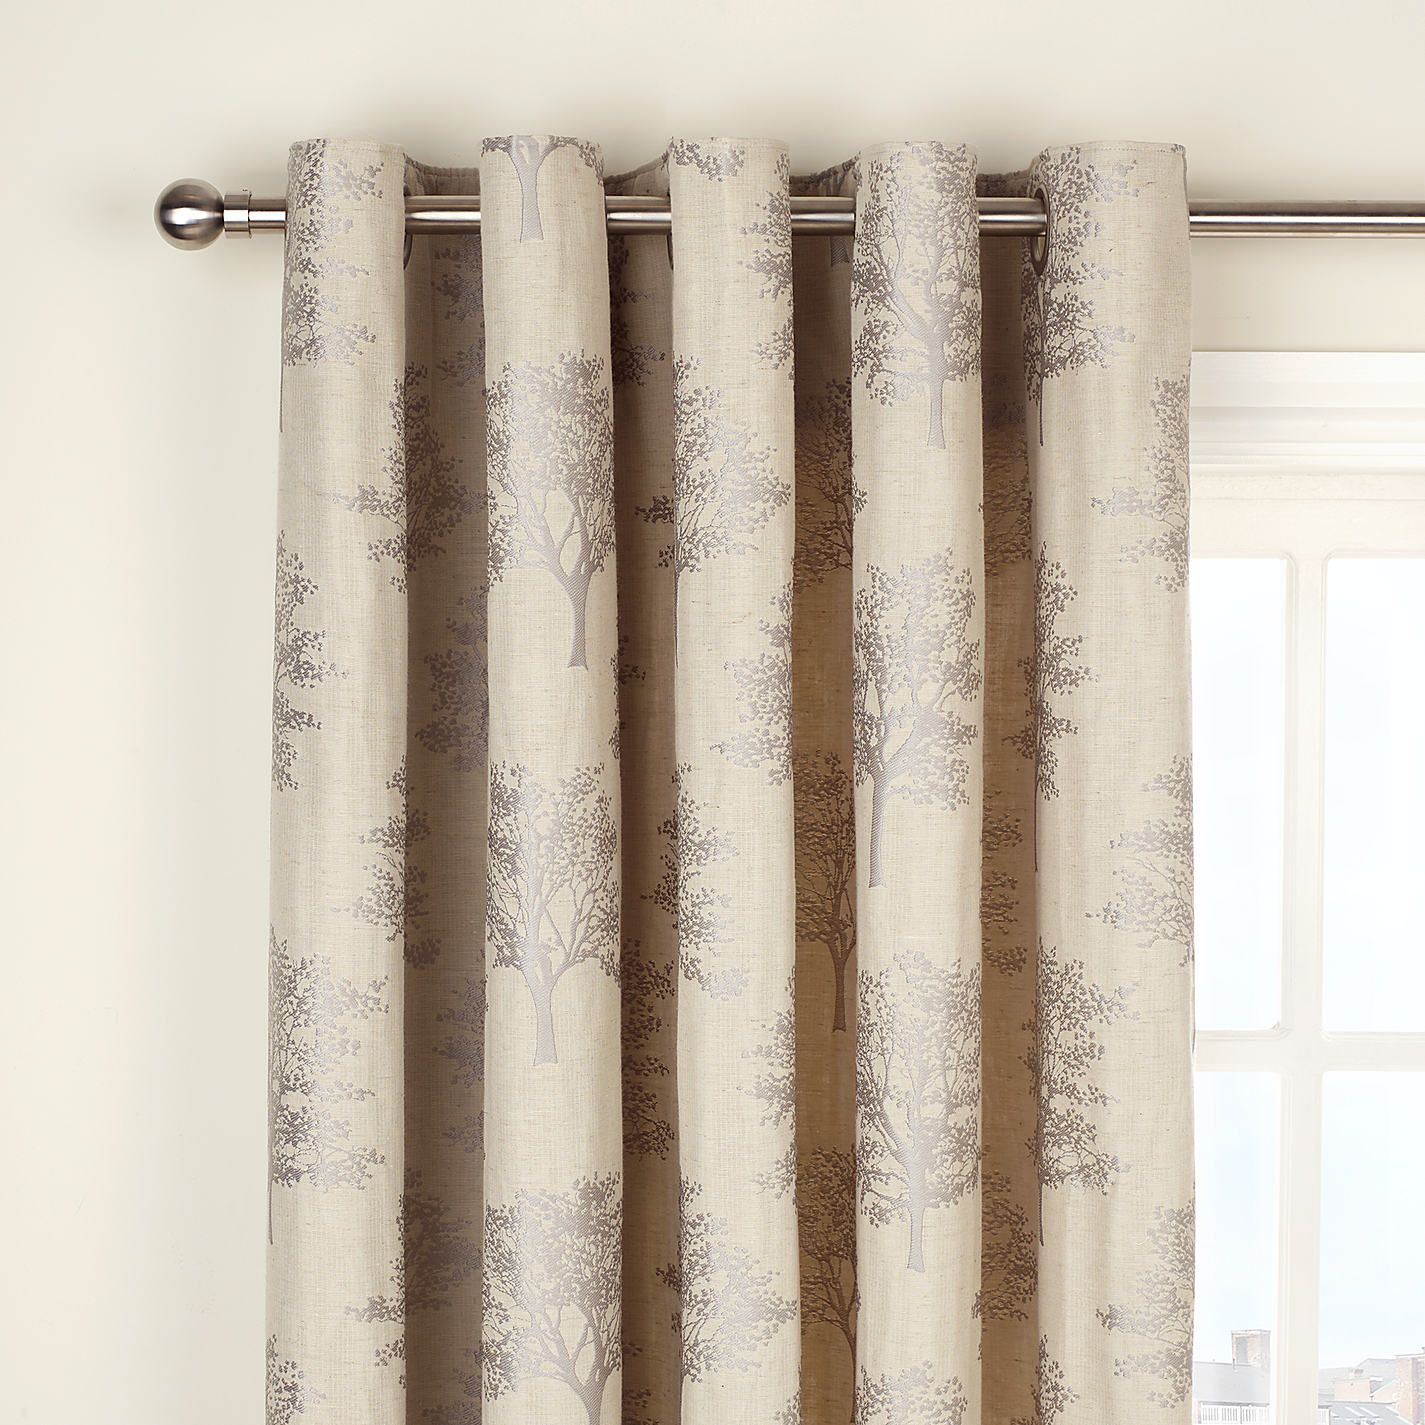 John Lewis Oakley Trees Eyelet Lined Curtains Natural Lounge CurtainsLined CurtainsLiving Room